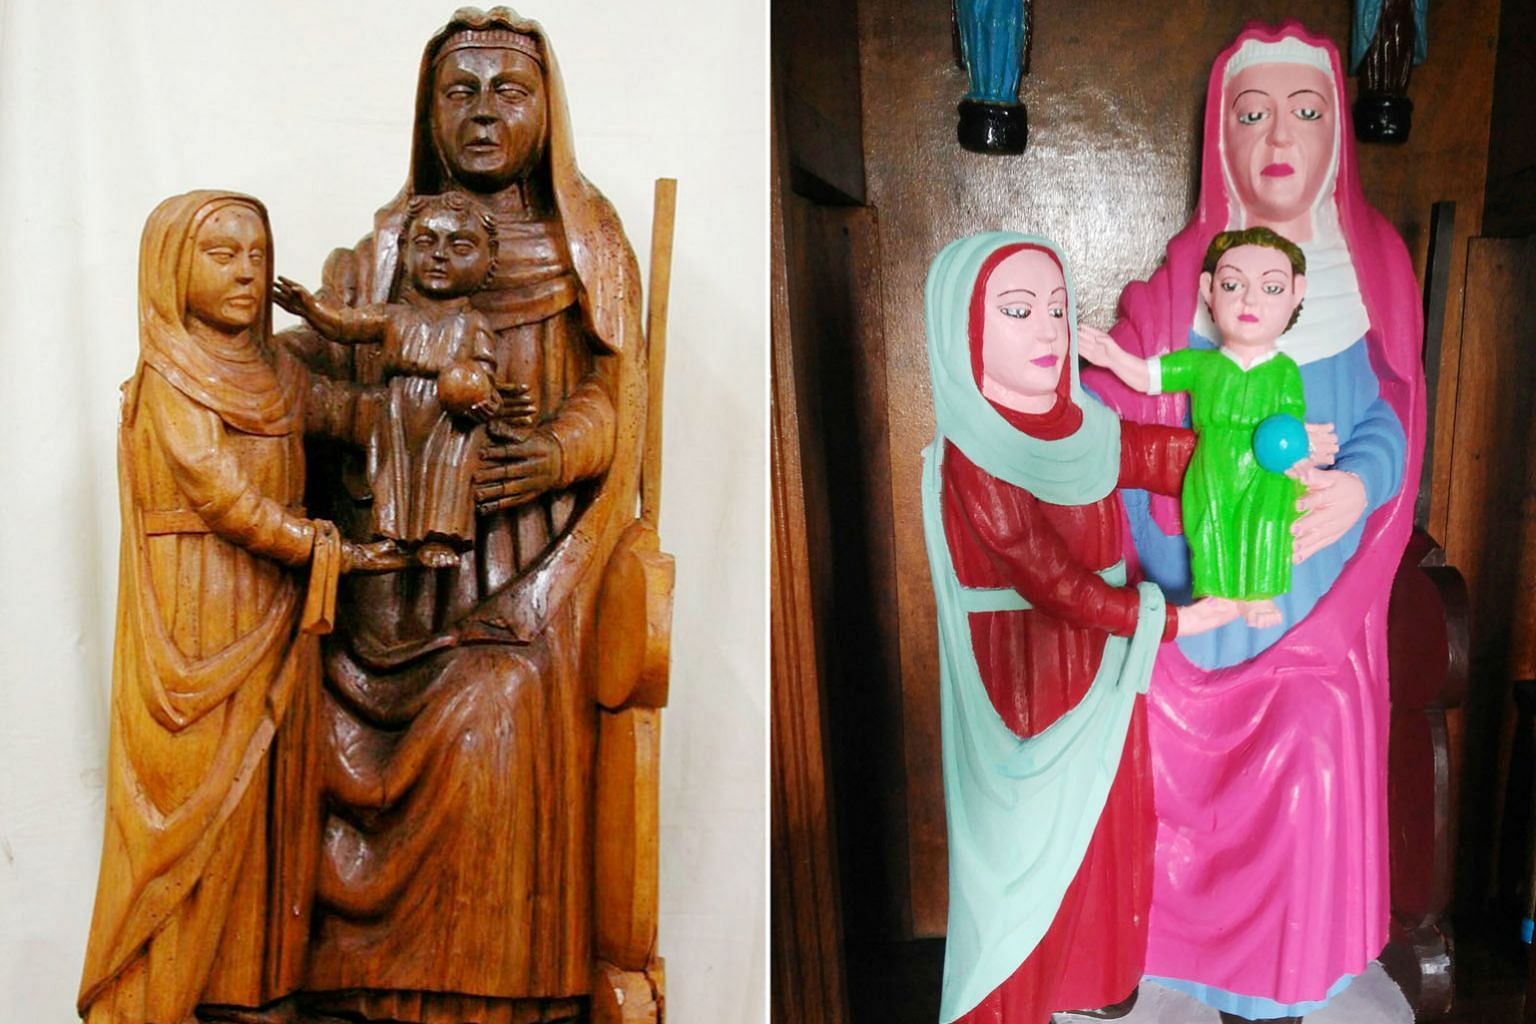 A 15th-century wooden statue in Spain has been repainted so that the Virgin Mary now has a bright pink headscarf and baby Jesus is clothed in a bright green robe.